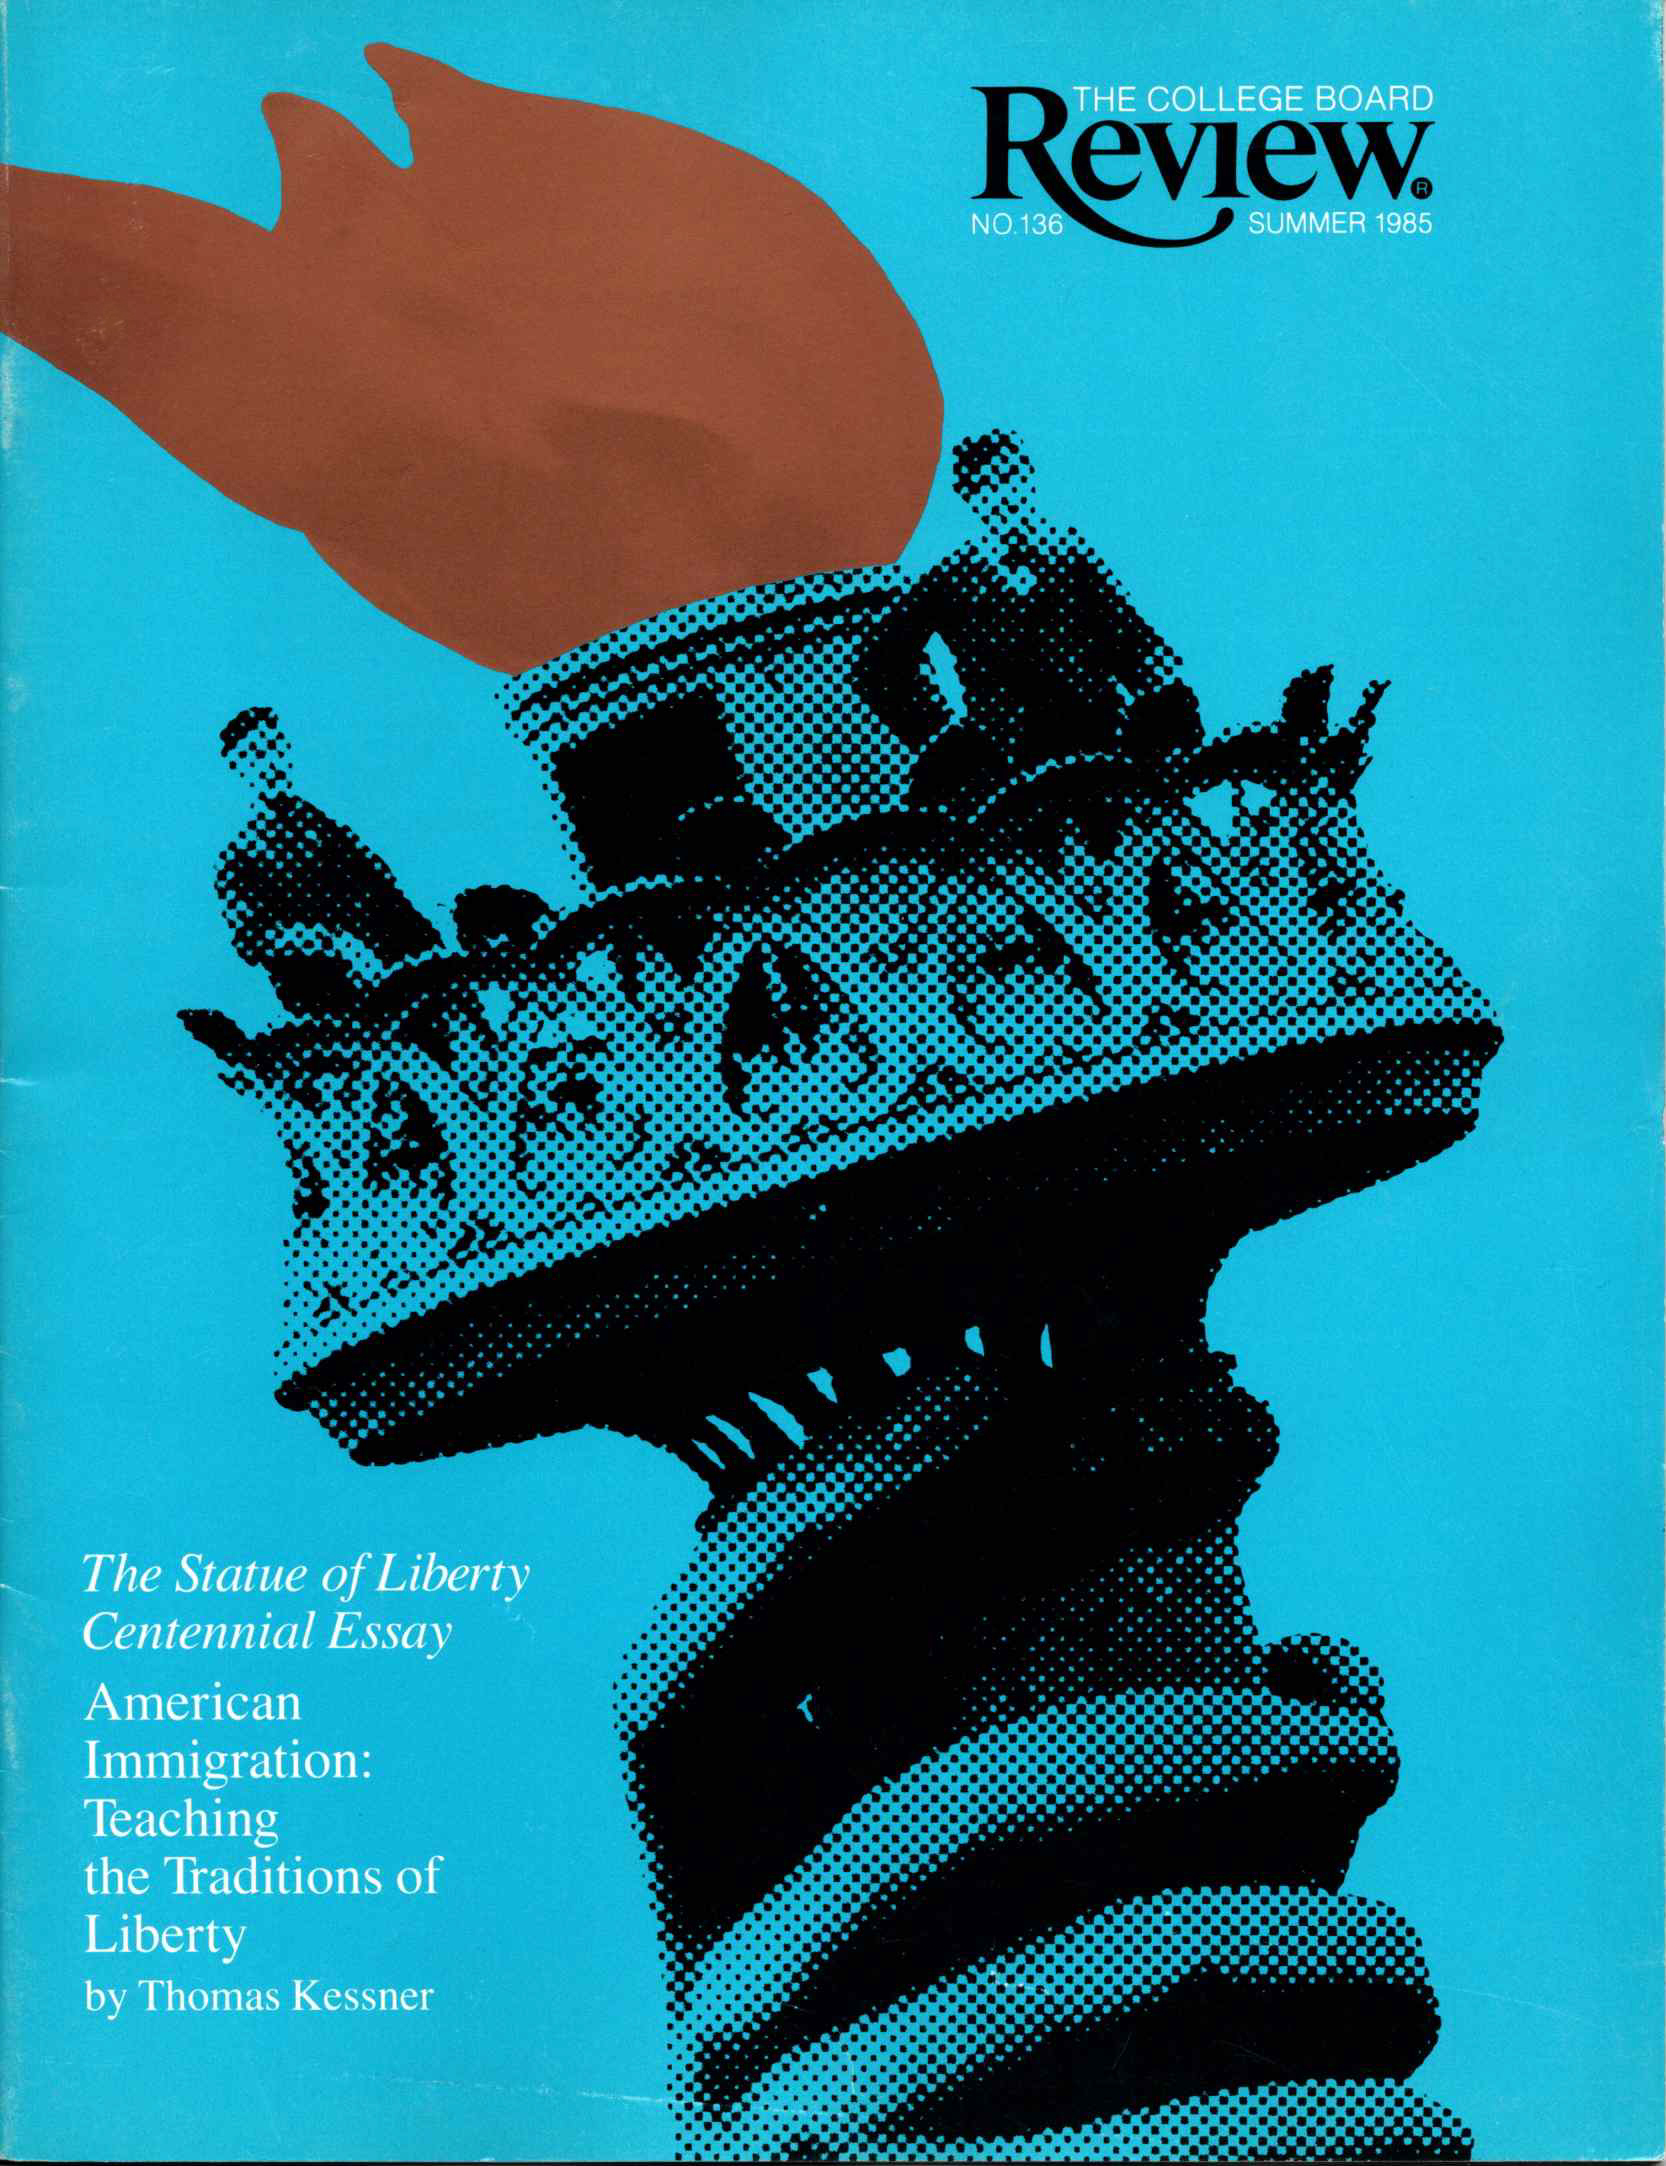 the summer 1985 cover of the college board review magazine featuring an illustration in blue and gold of two men from the 19th century standing atop the statue of liberty's torch